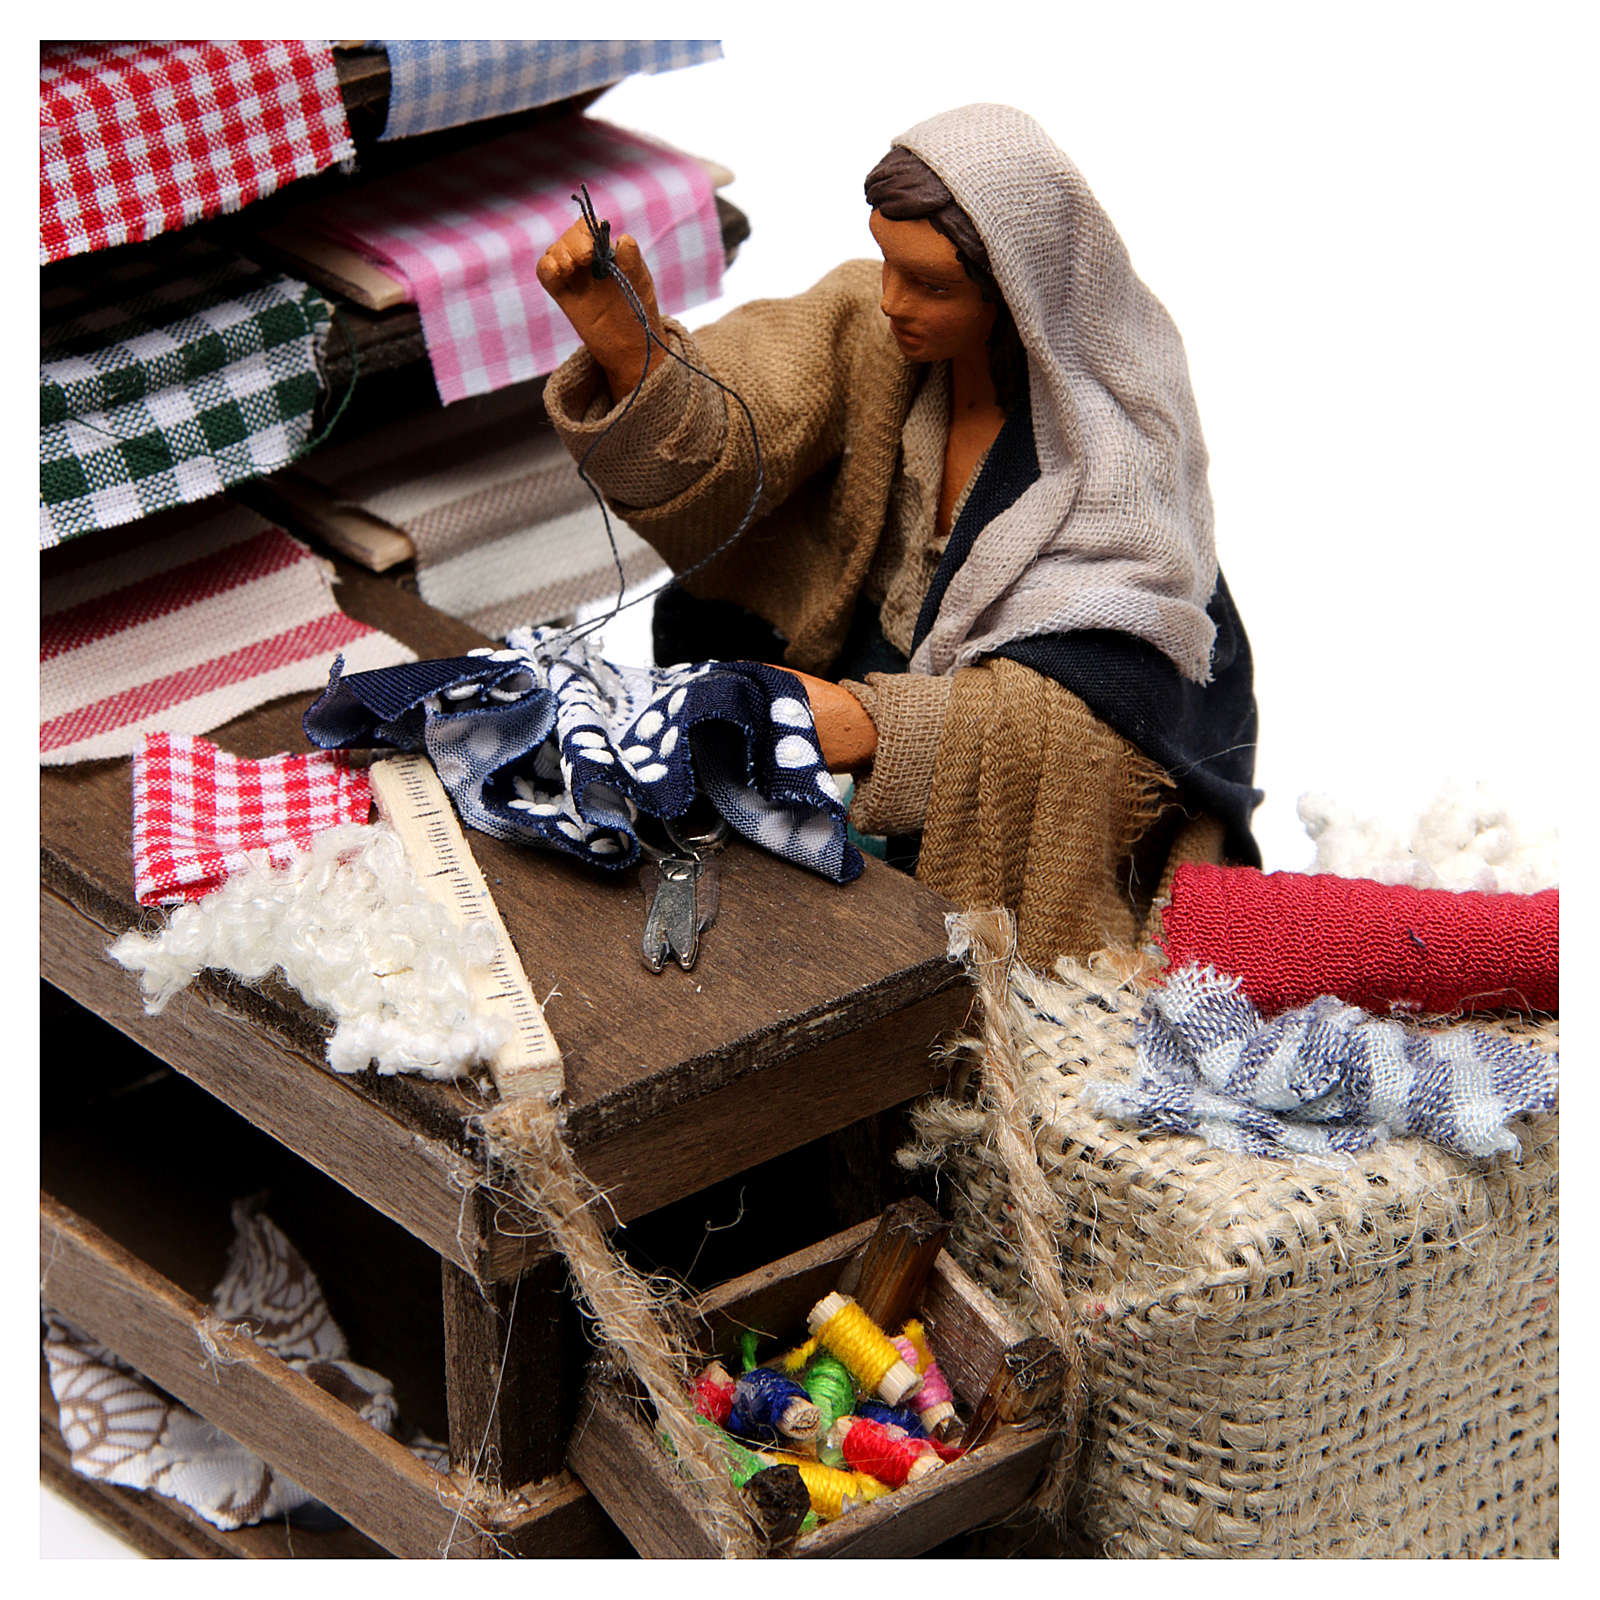 Moving Seamstress with Workstation for Neapolitan nativity of 12 cm 4